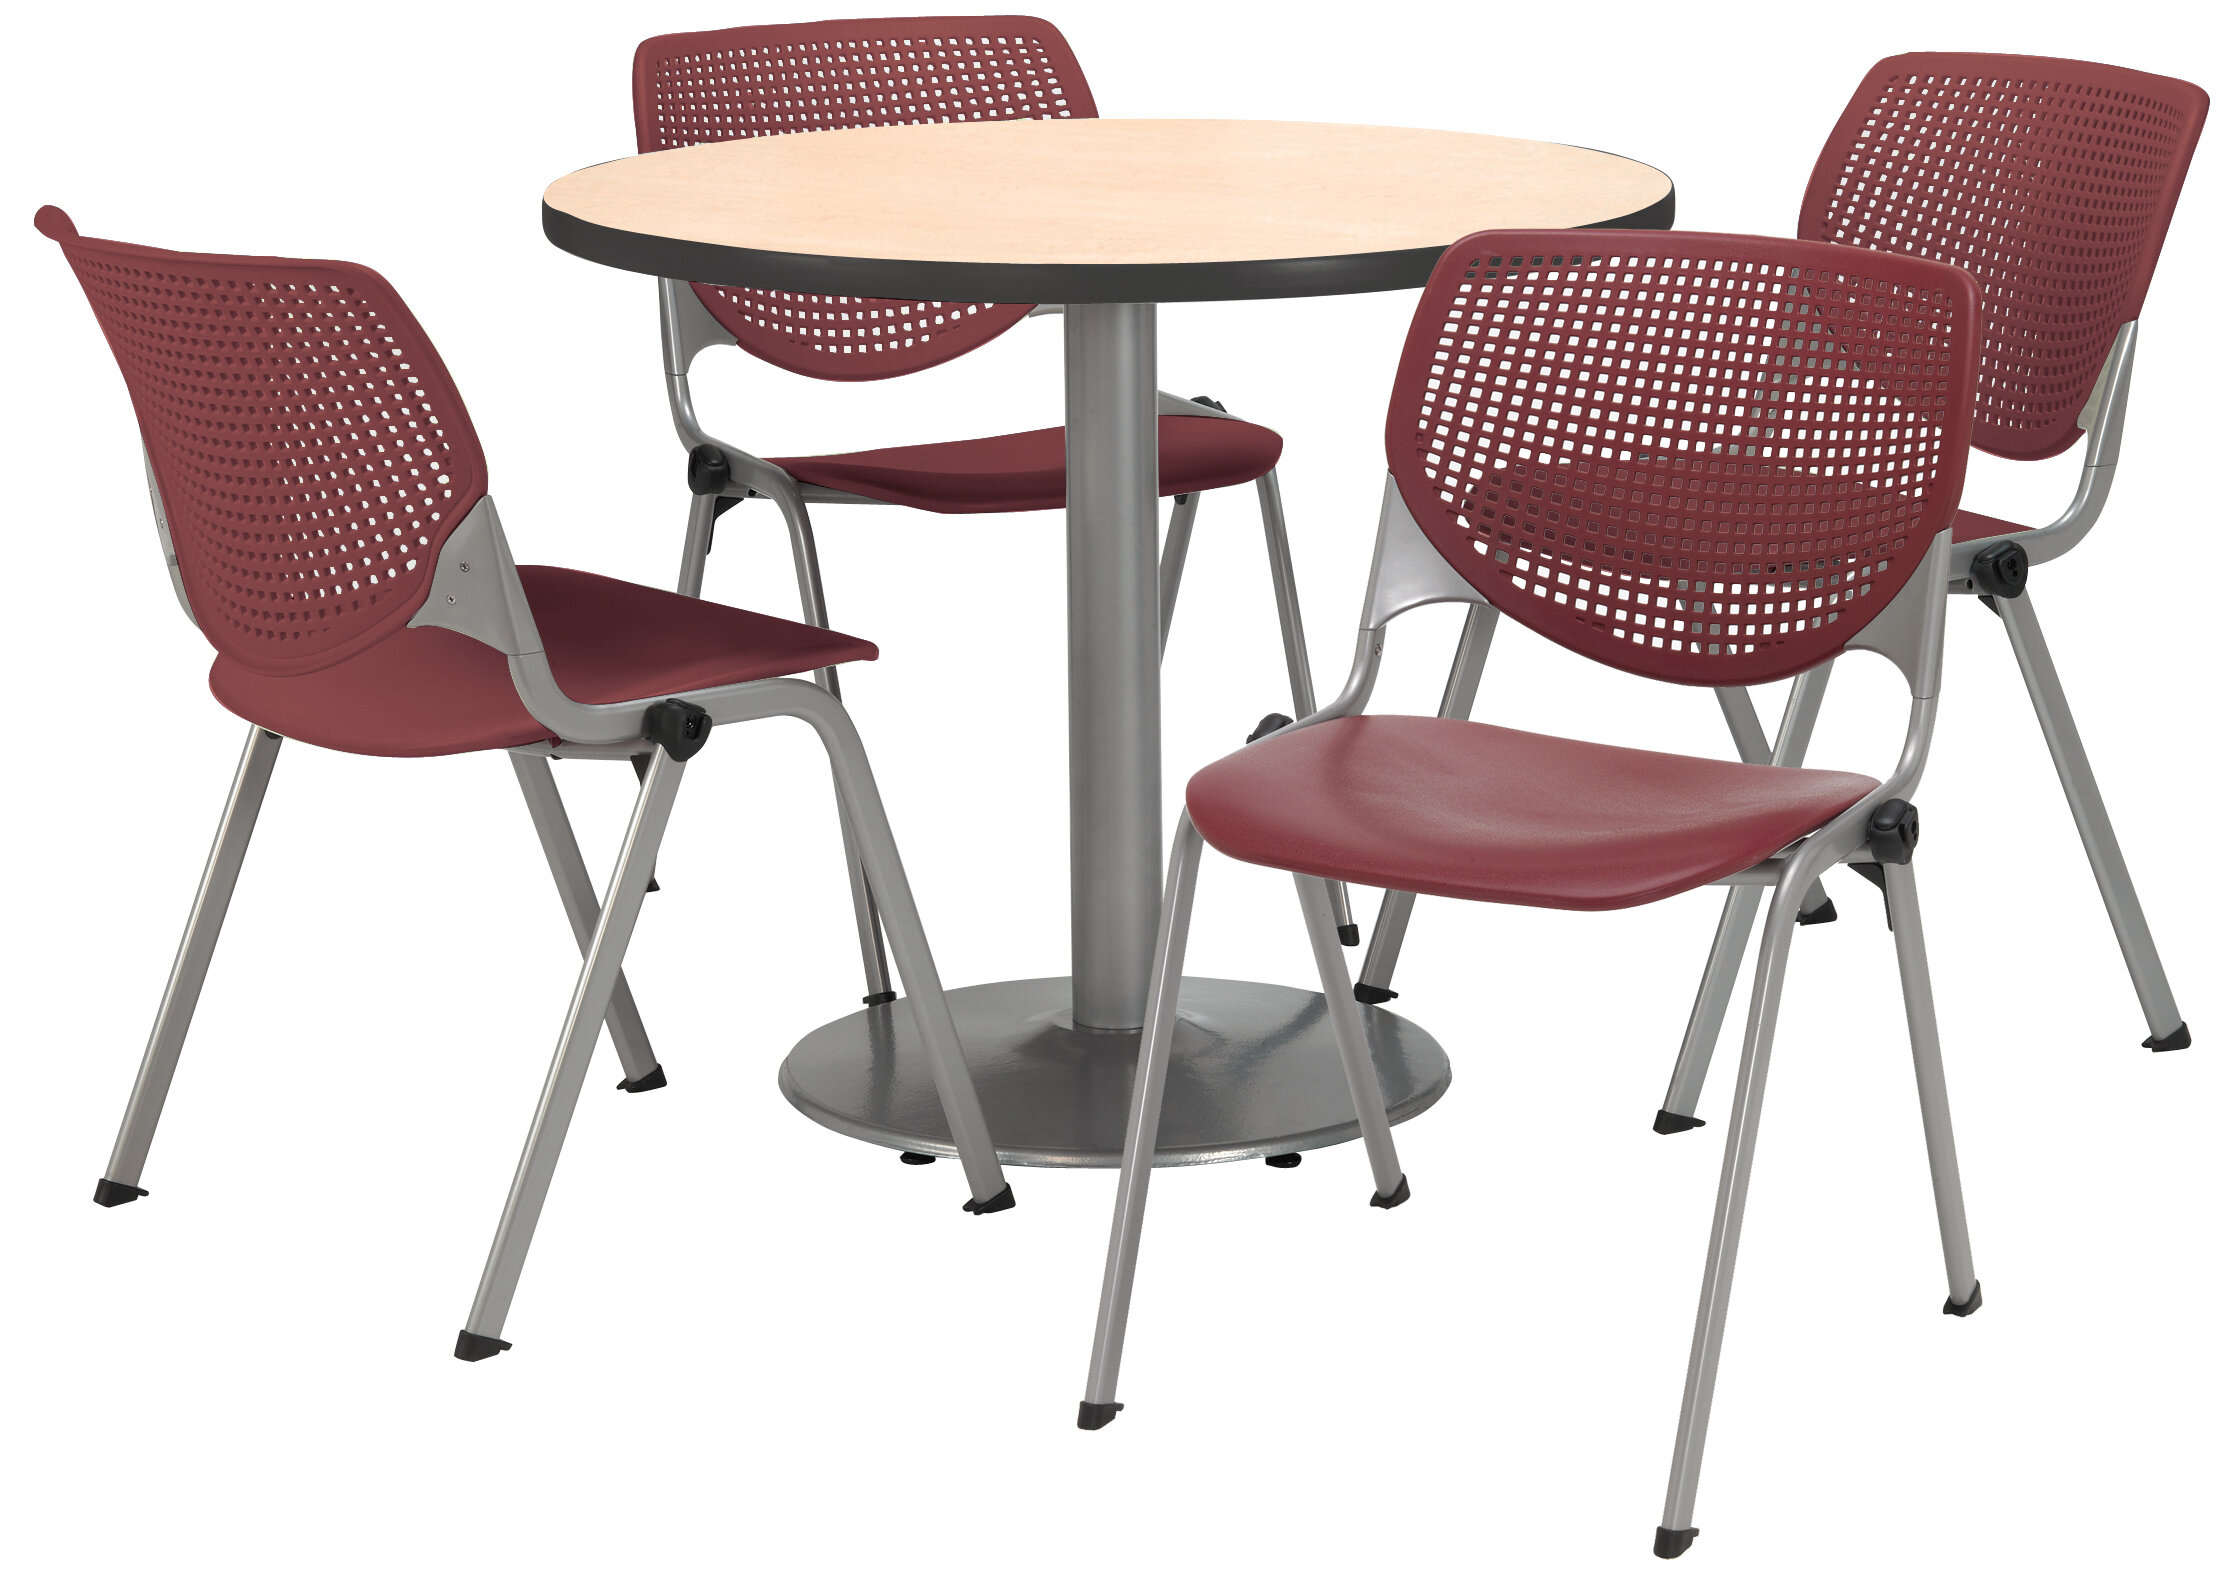 KFI Seating Round Cafeteria Table And Chair Set | Wayfair